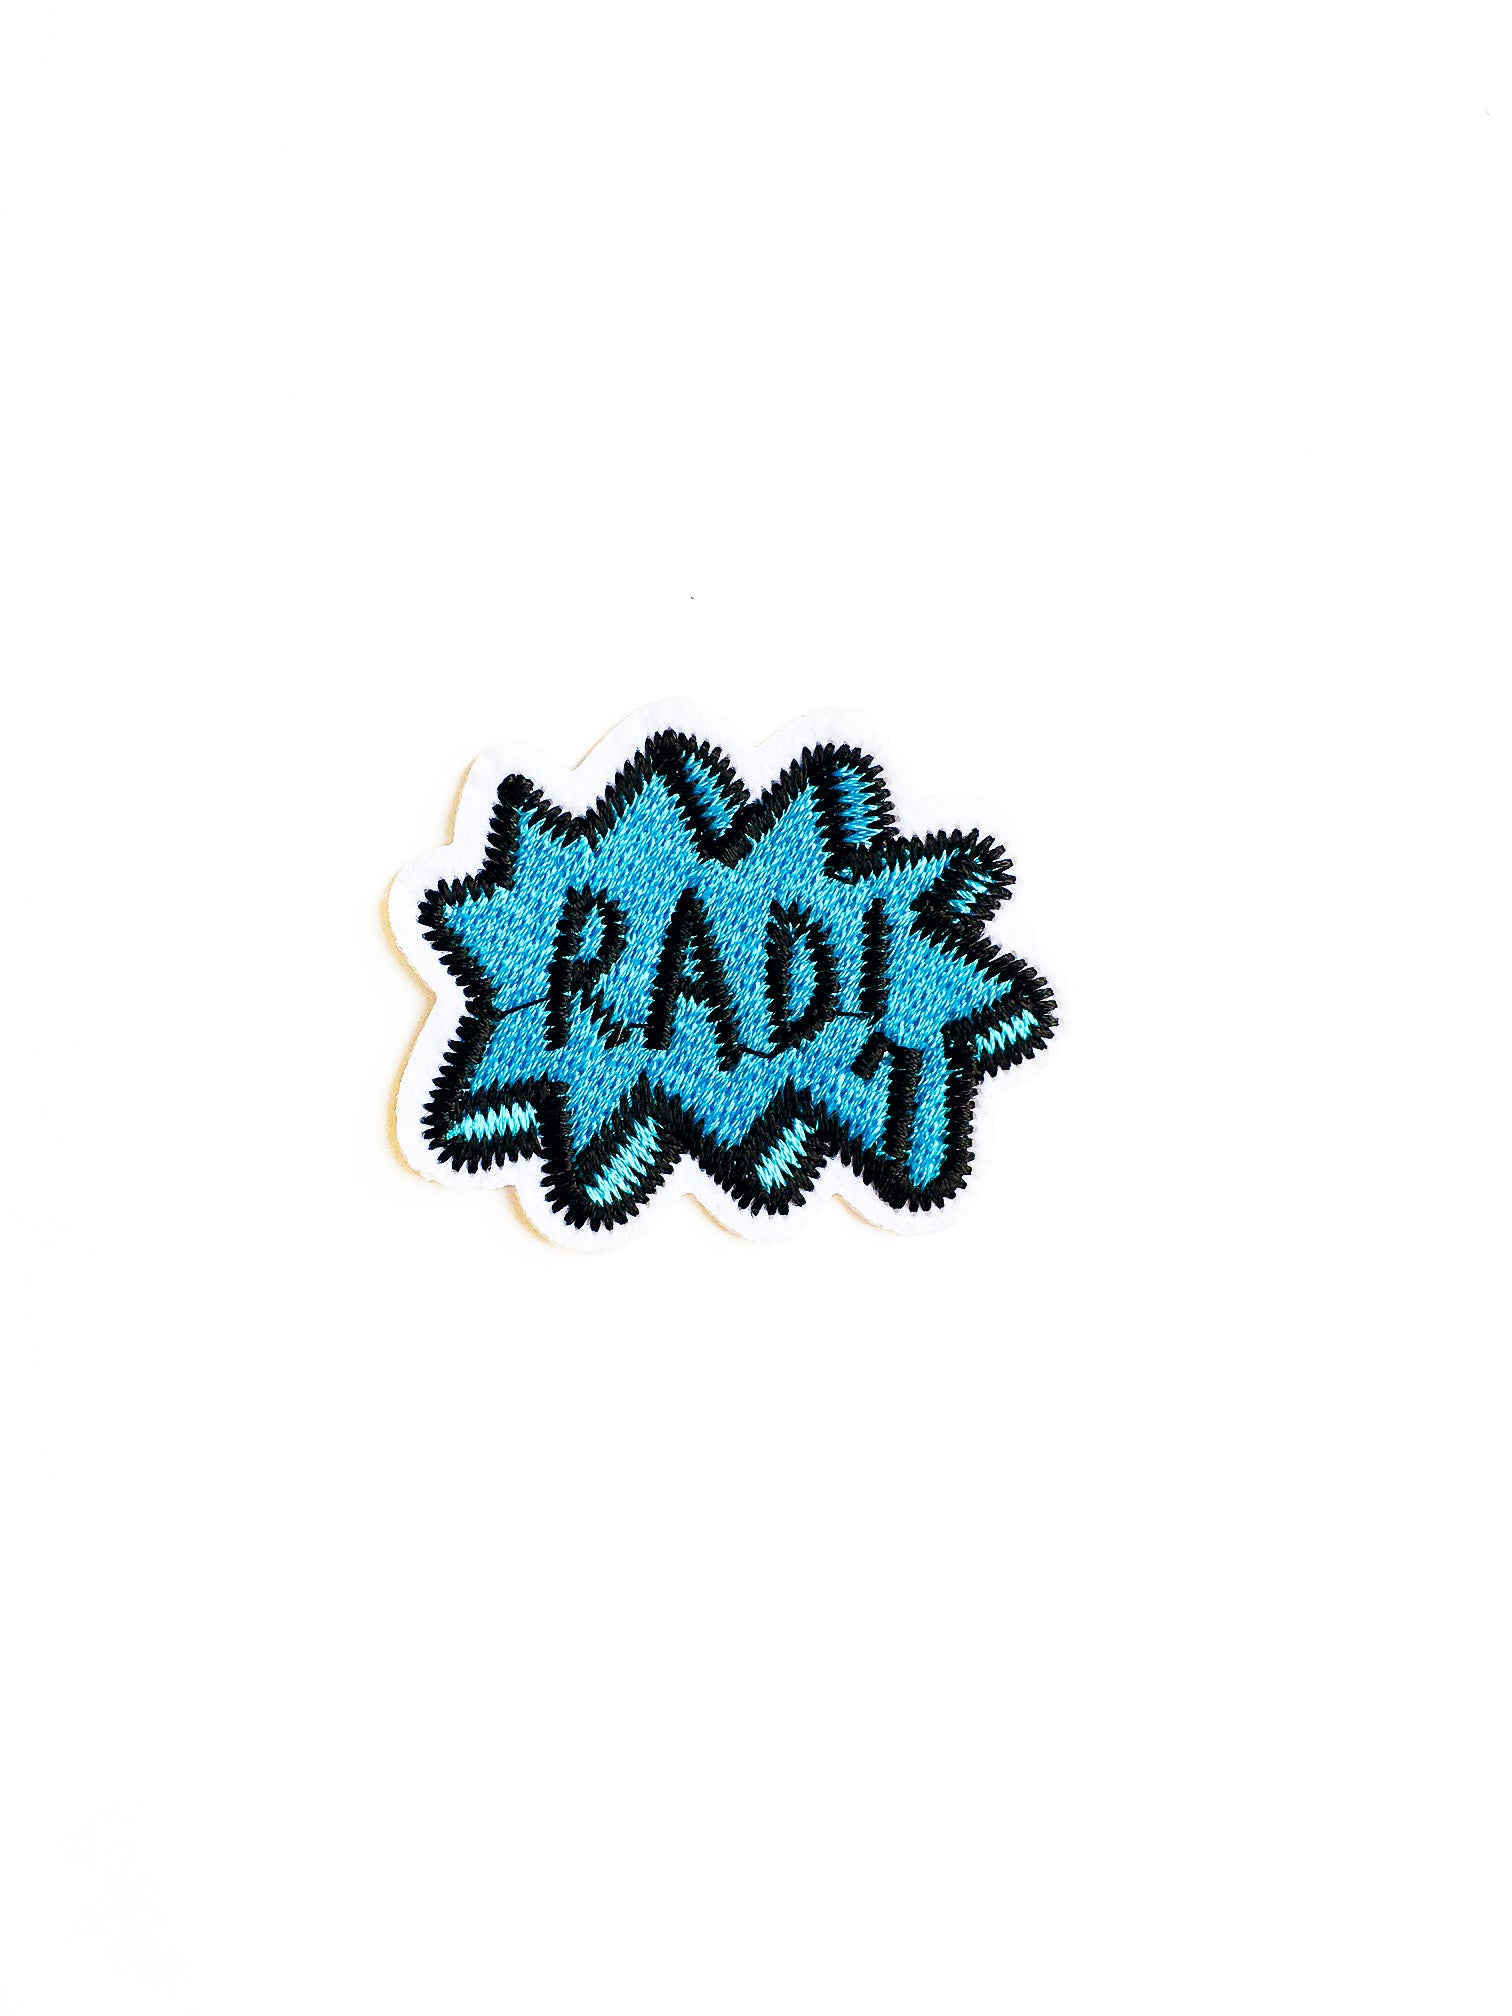 Rad Iron on Patch